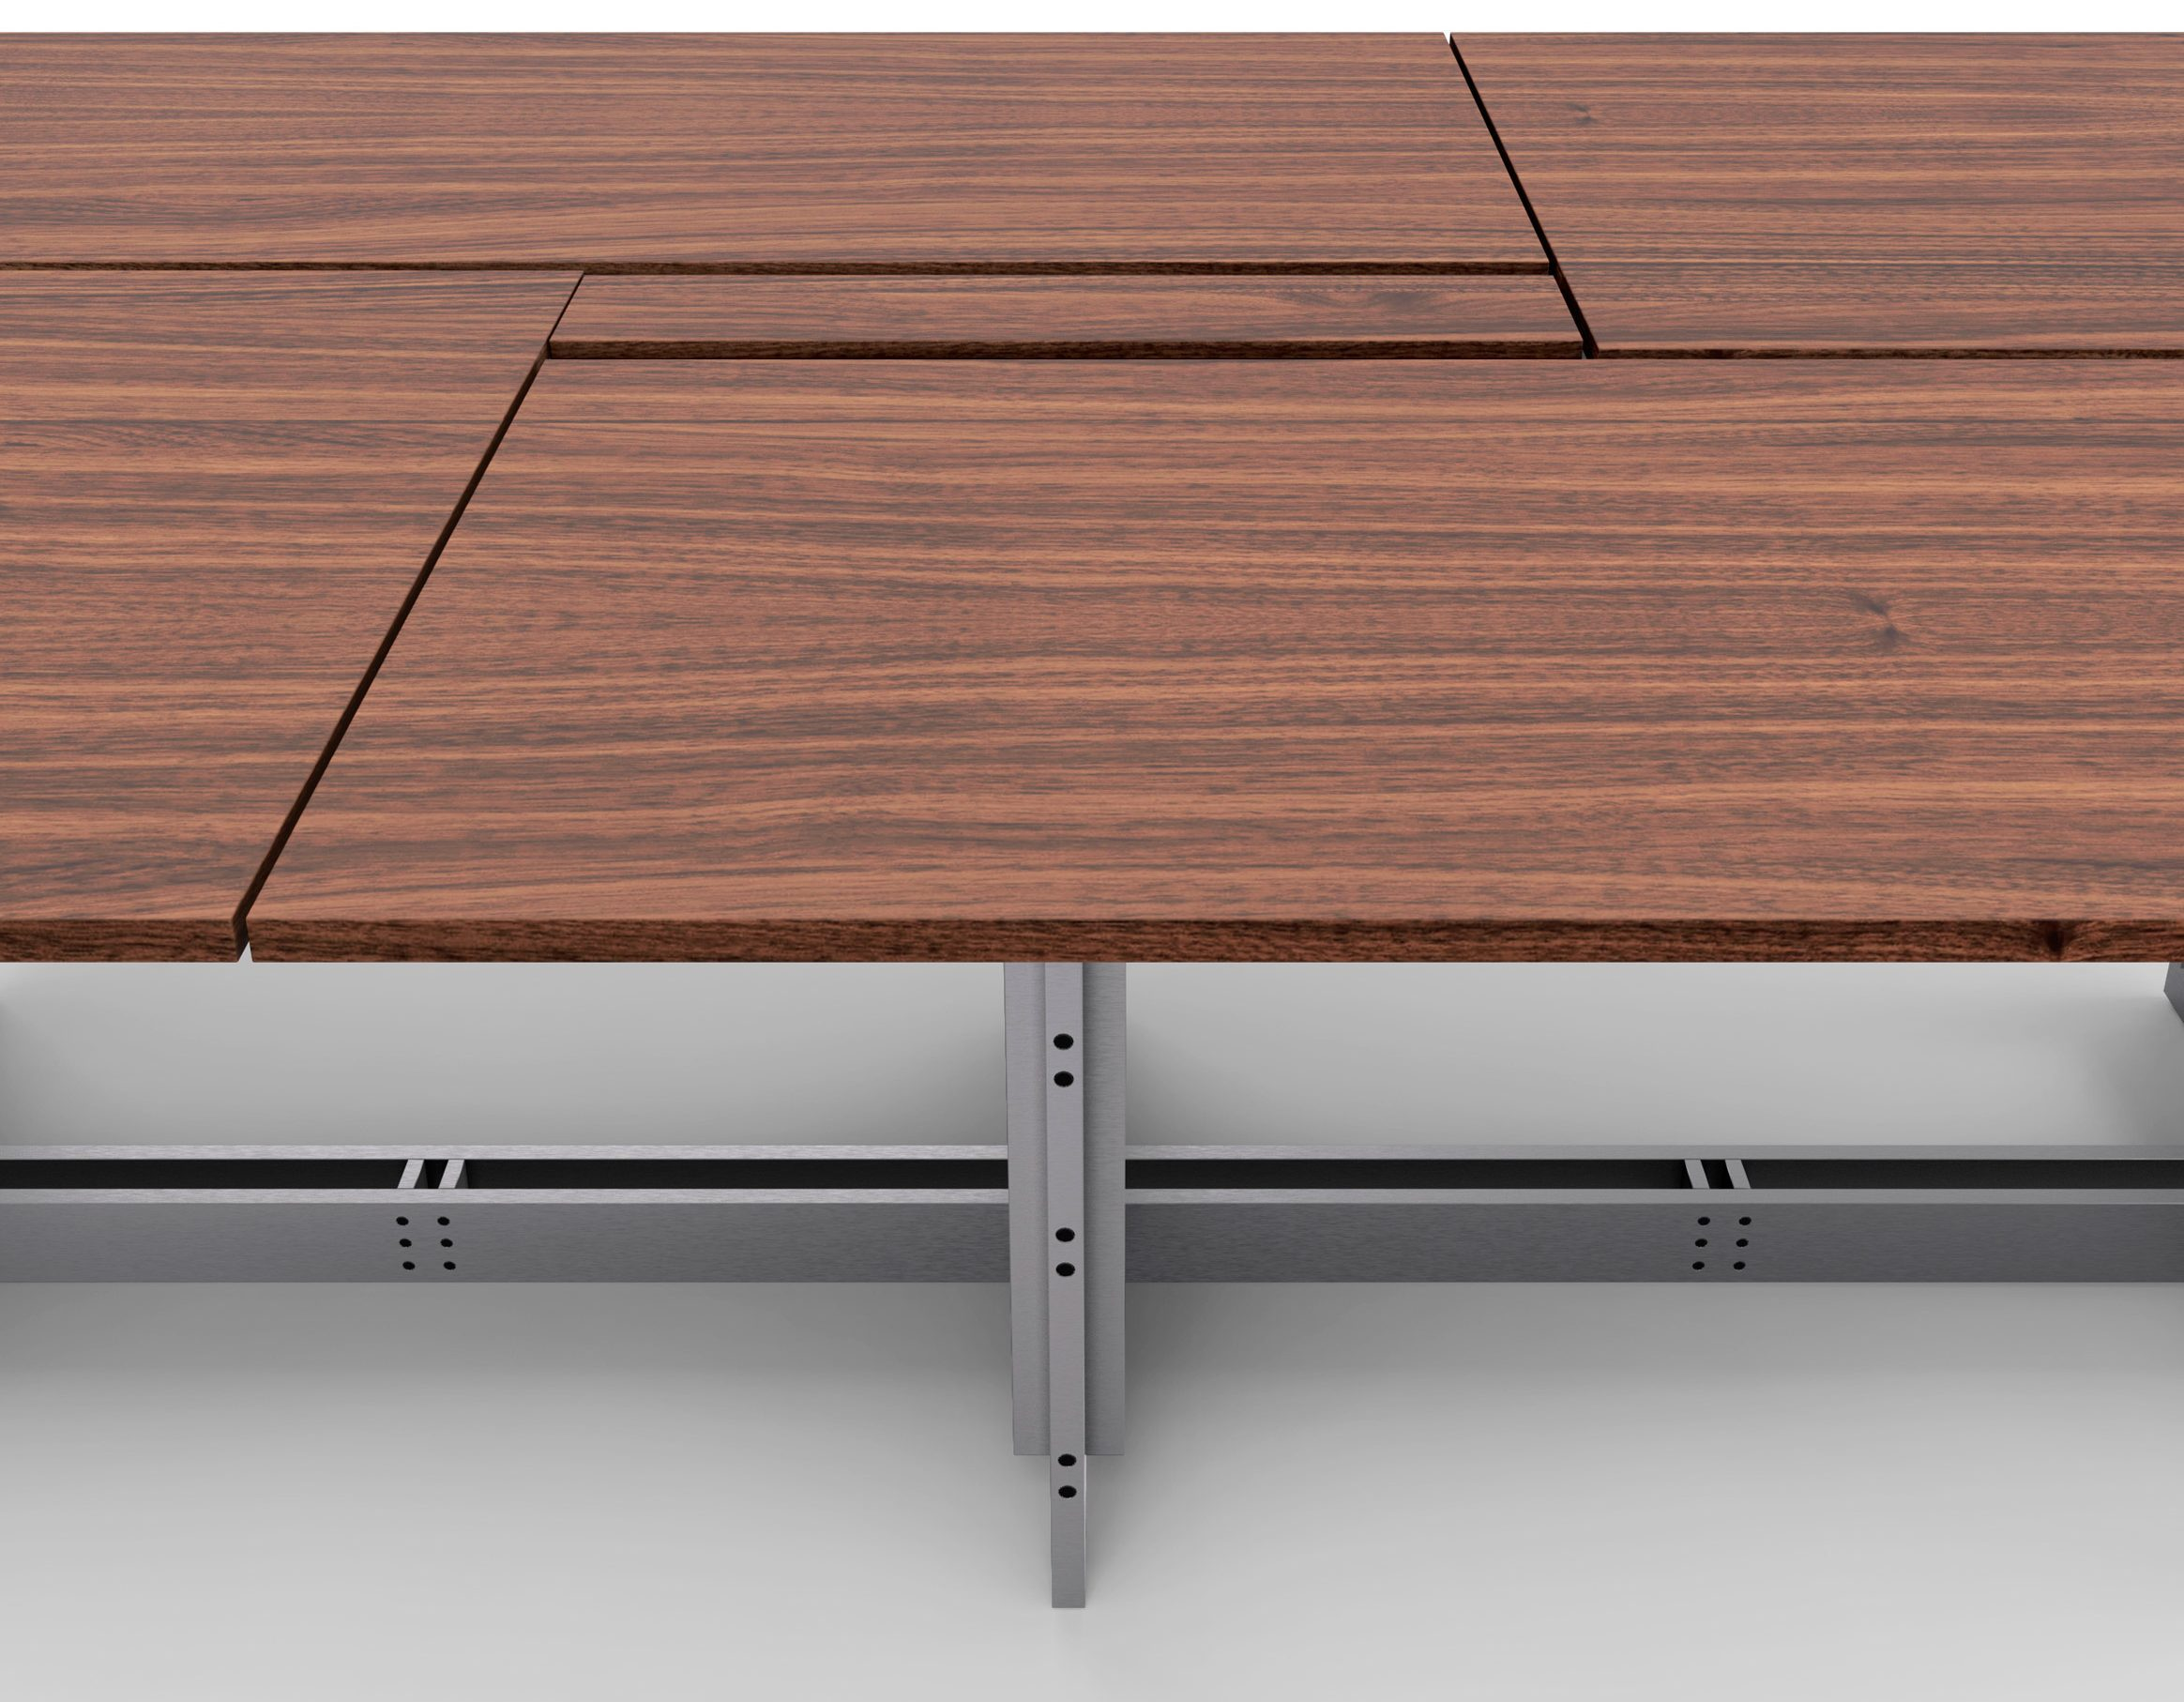 A photograph of a wooden table